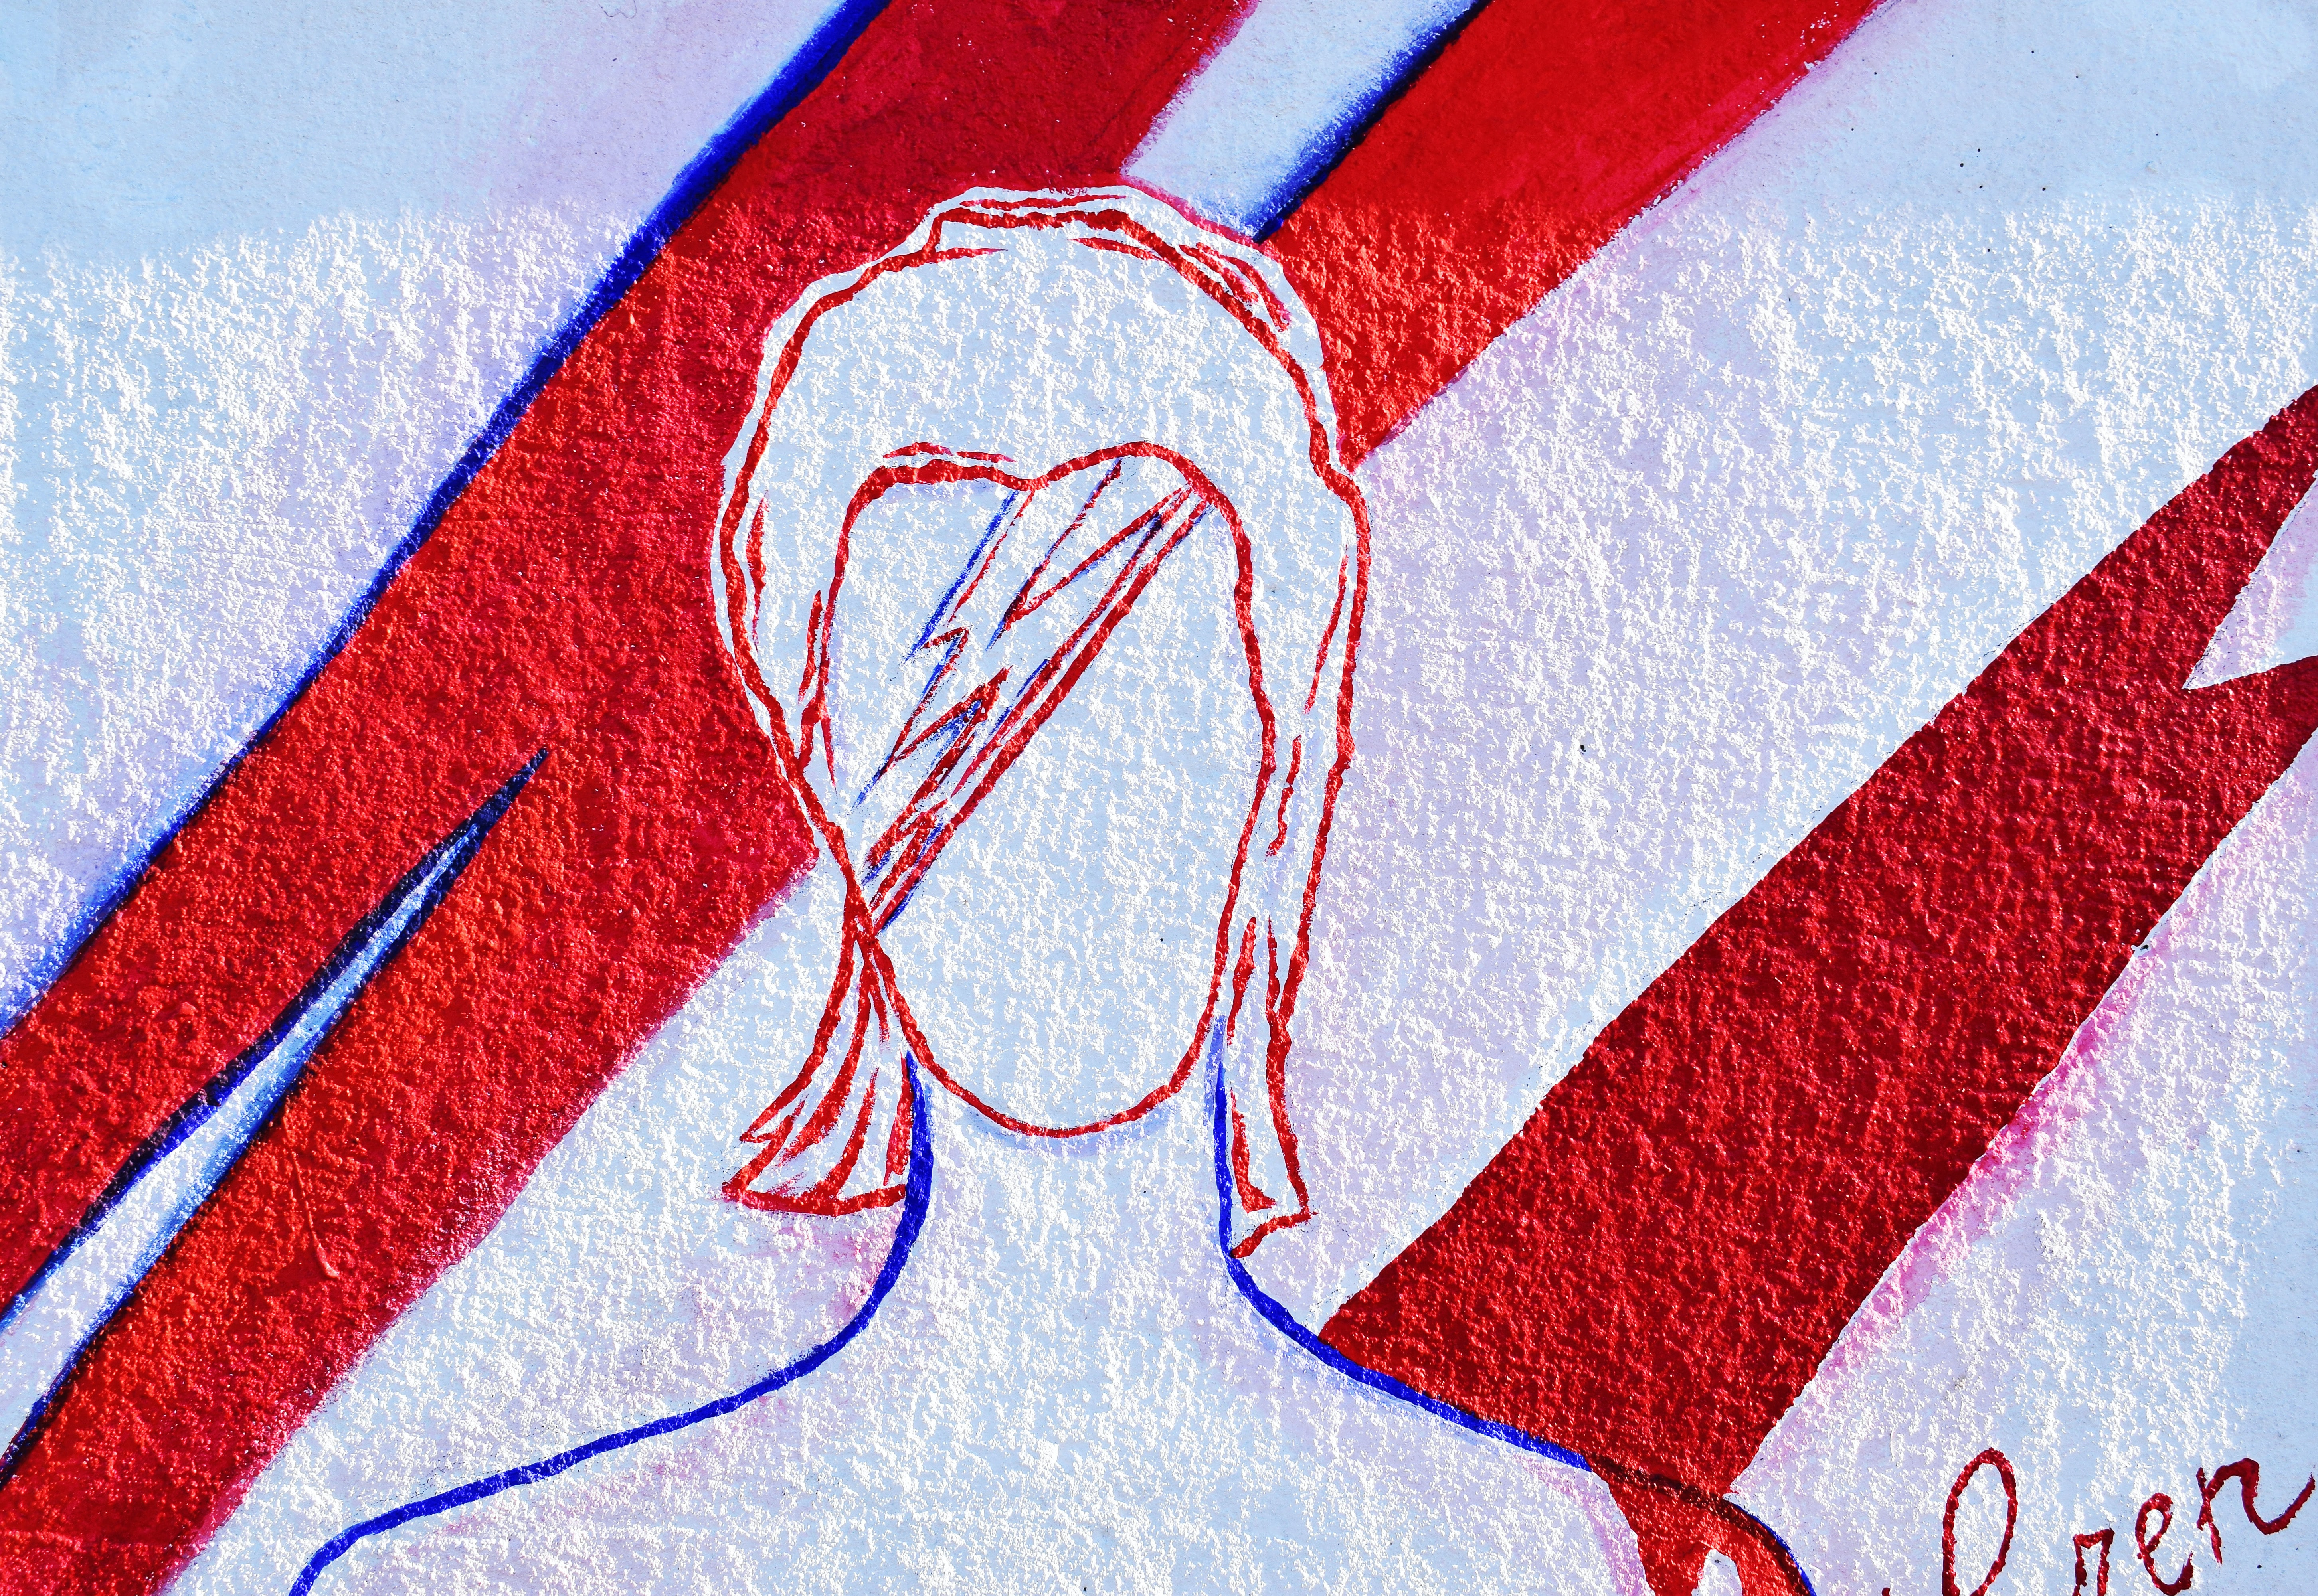 A drawing of a faceless guy with a red lightning bolt going through his head.